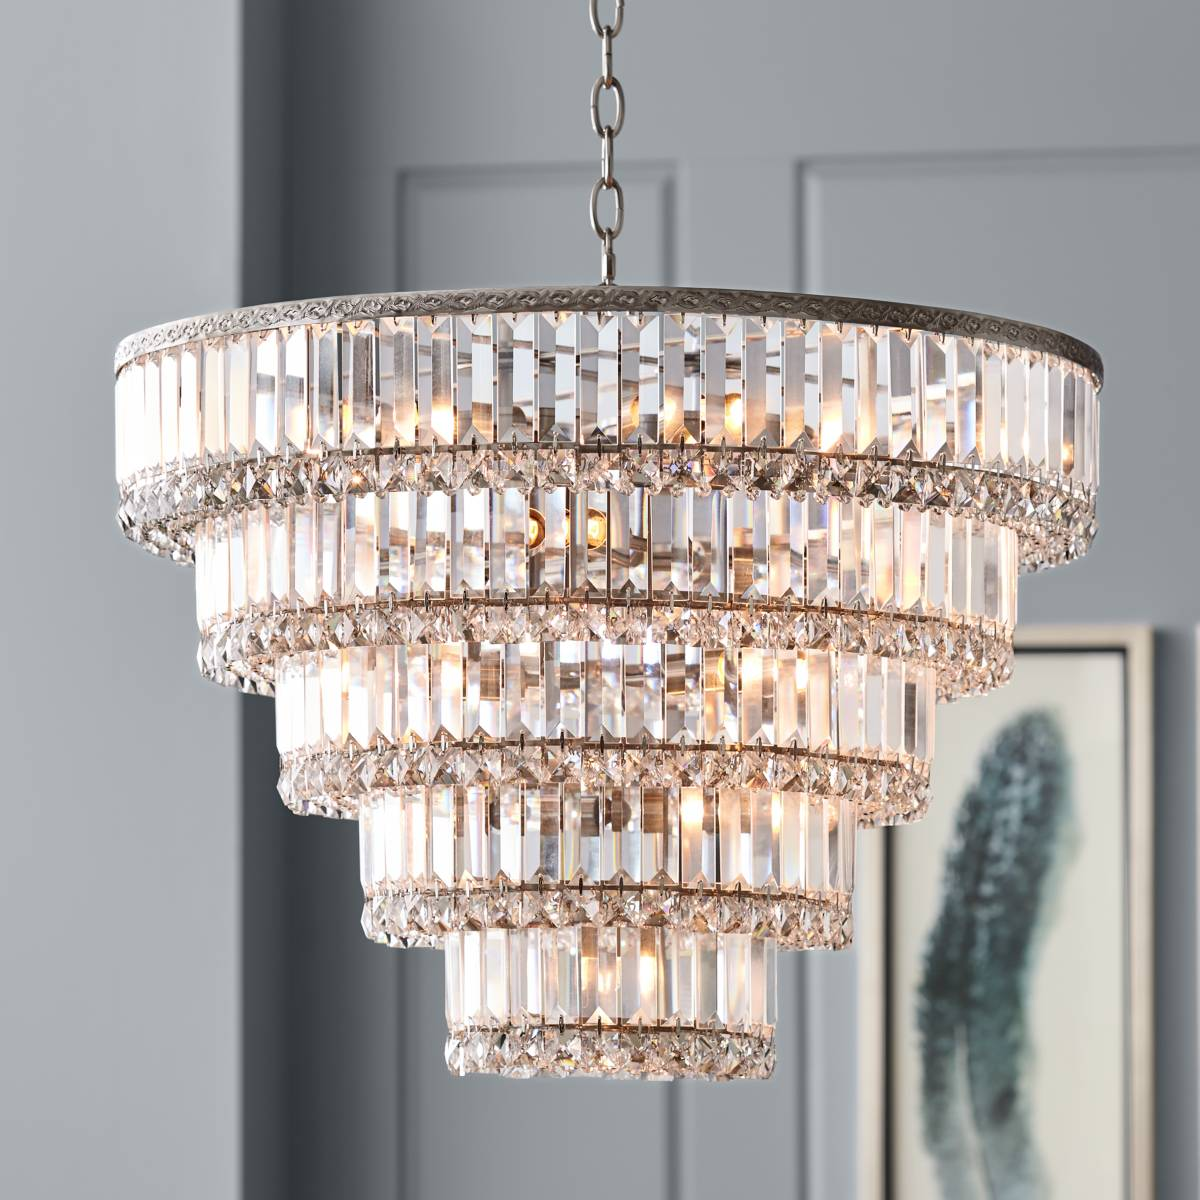 Lights Plus Decor: Chandelier Lighting Fixtures